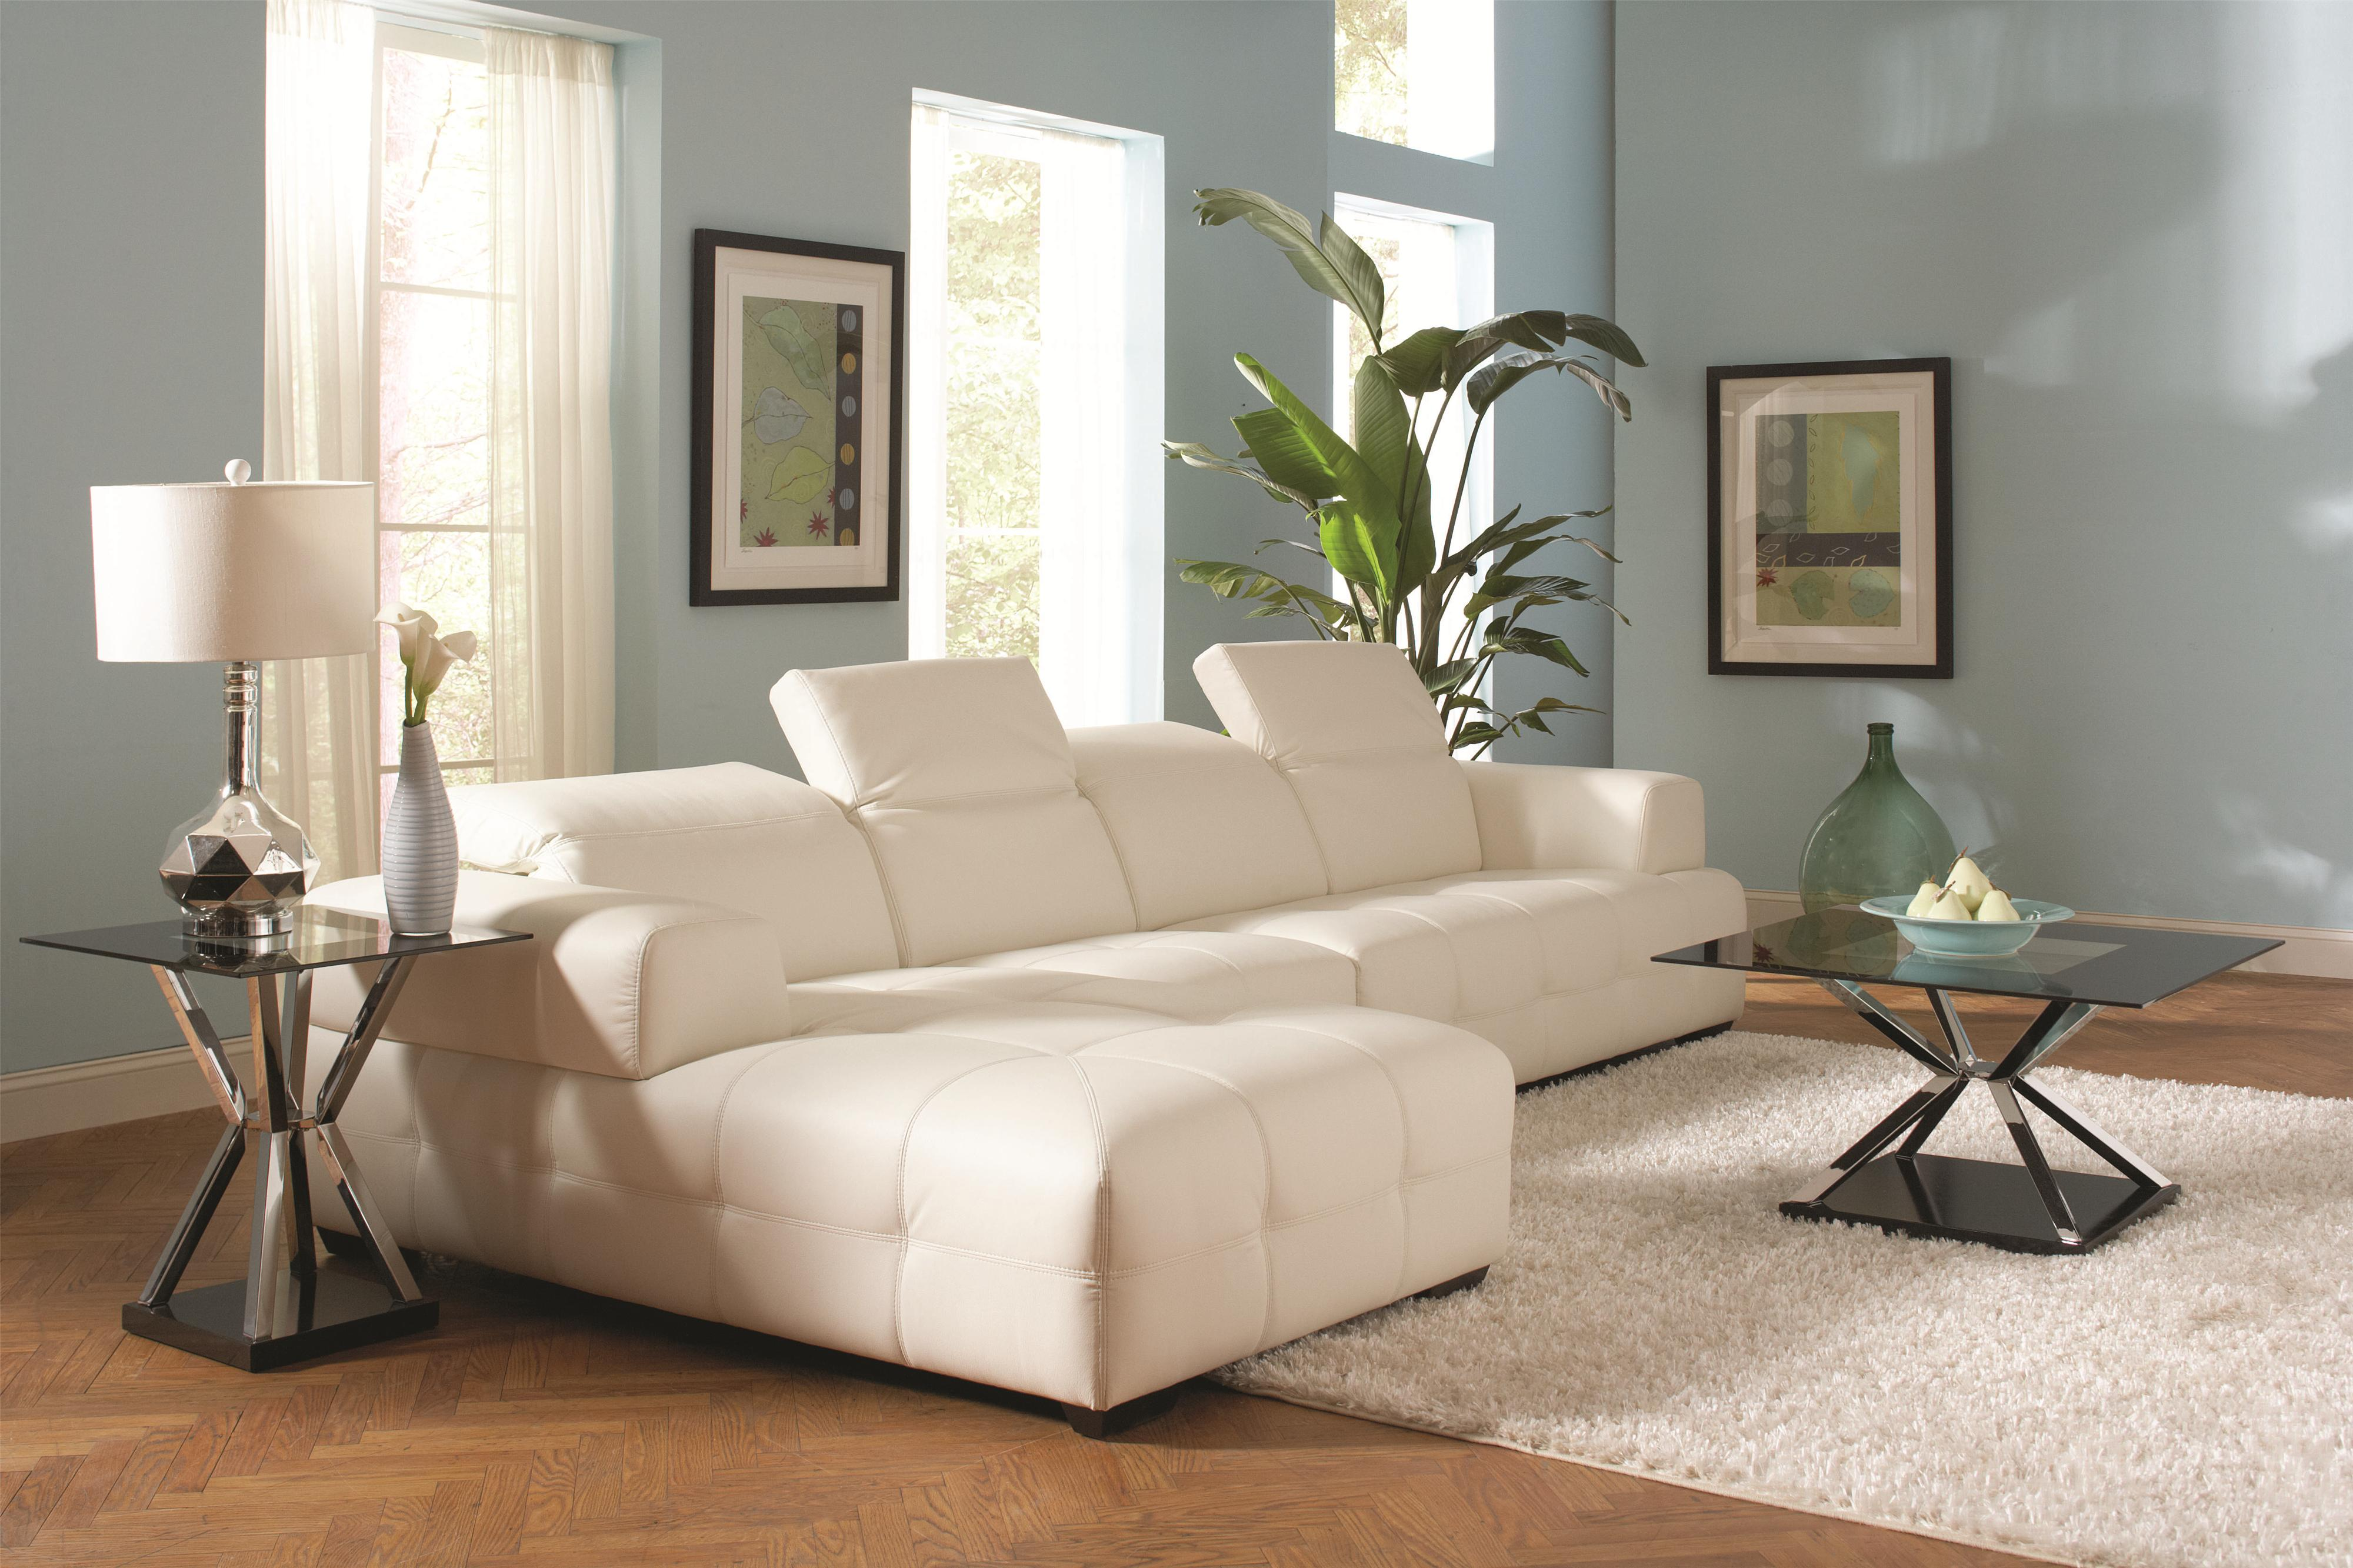 Coaster Darby Contemporary Sectional Sofa with Wide Arms Value